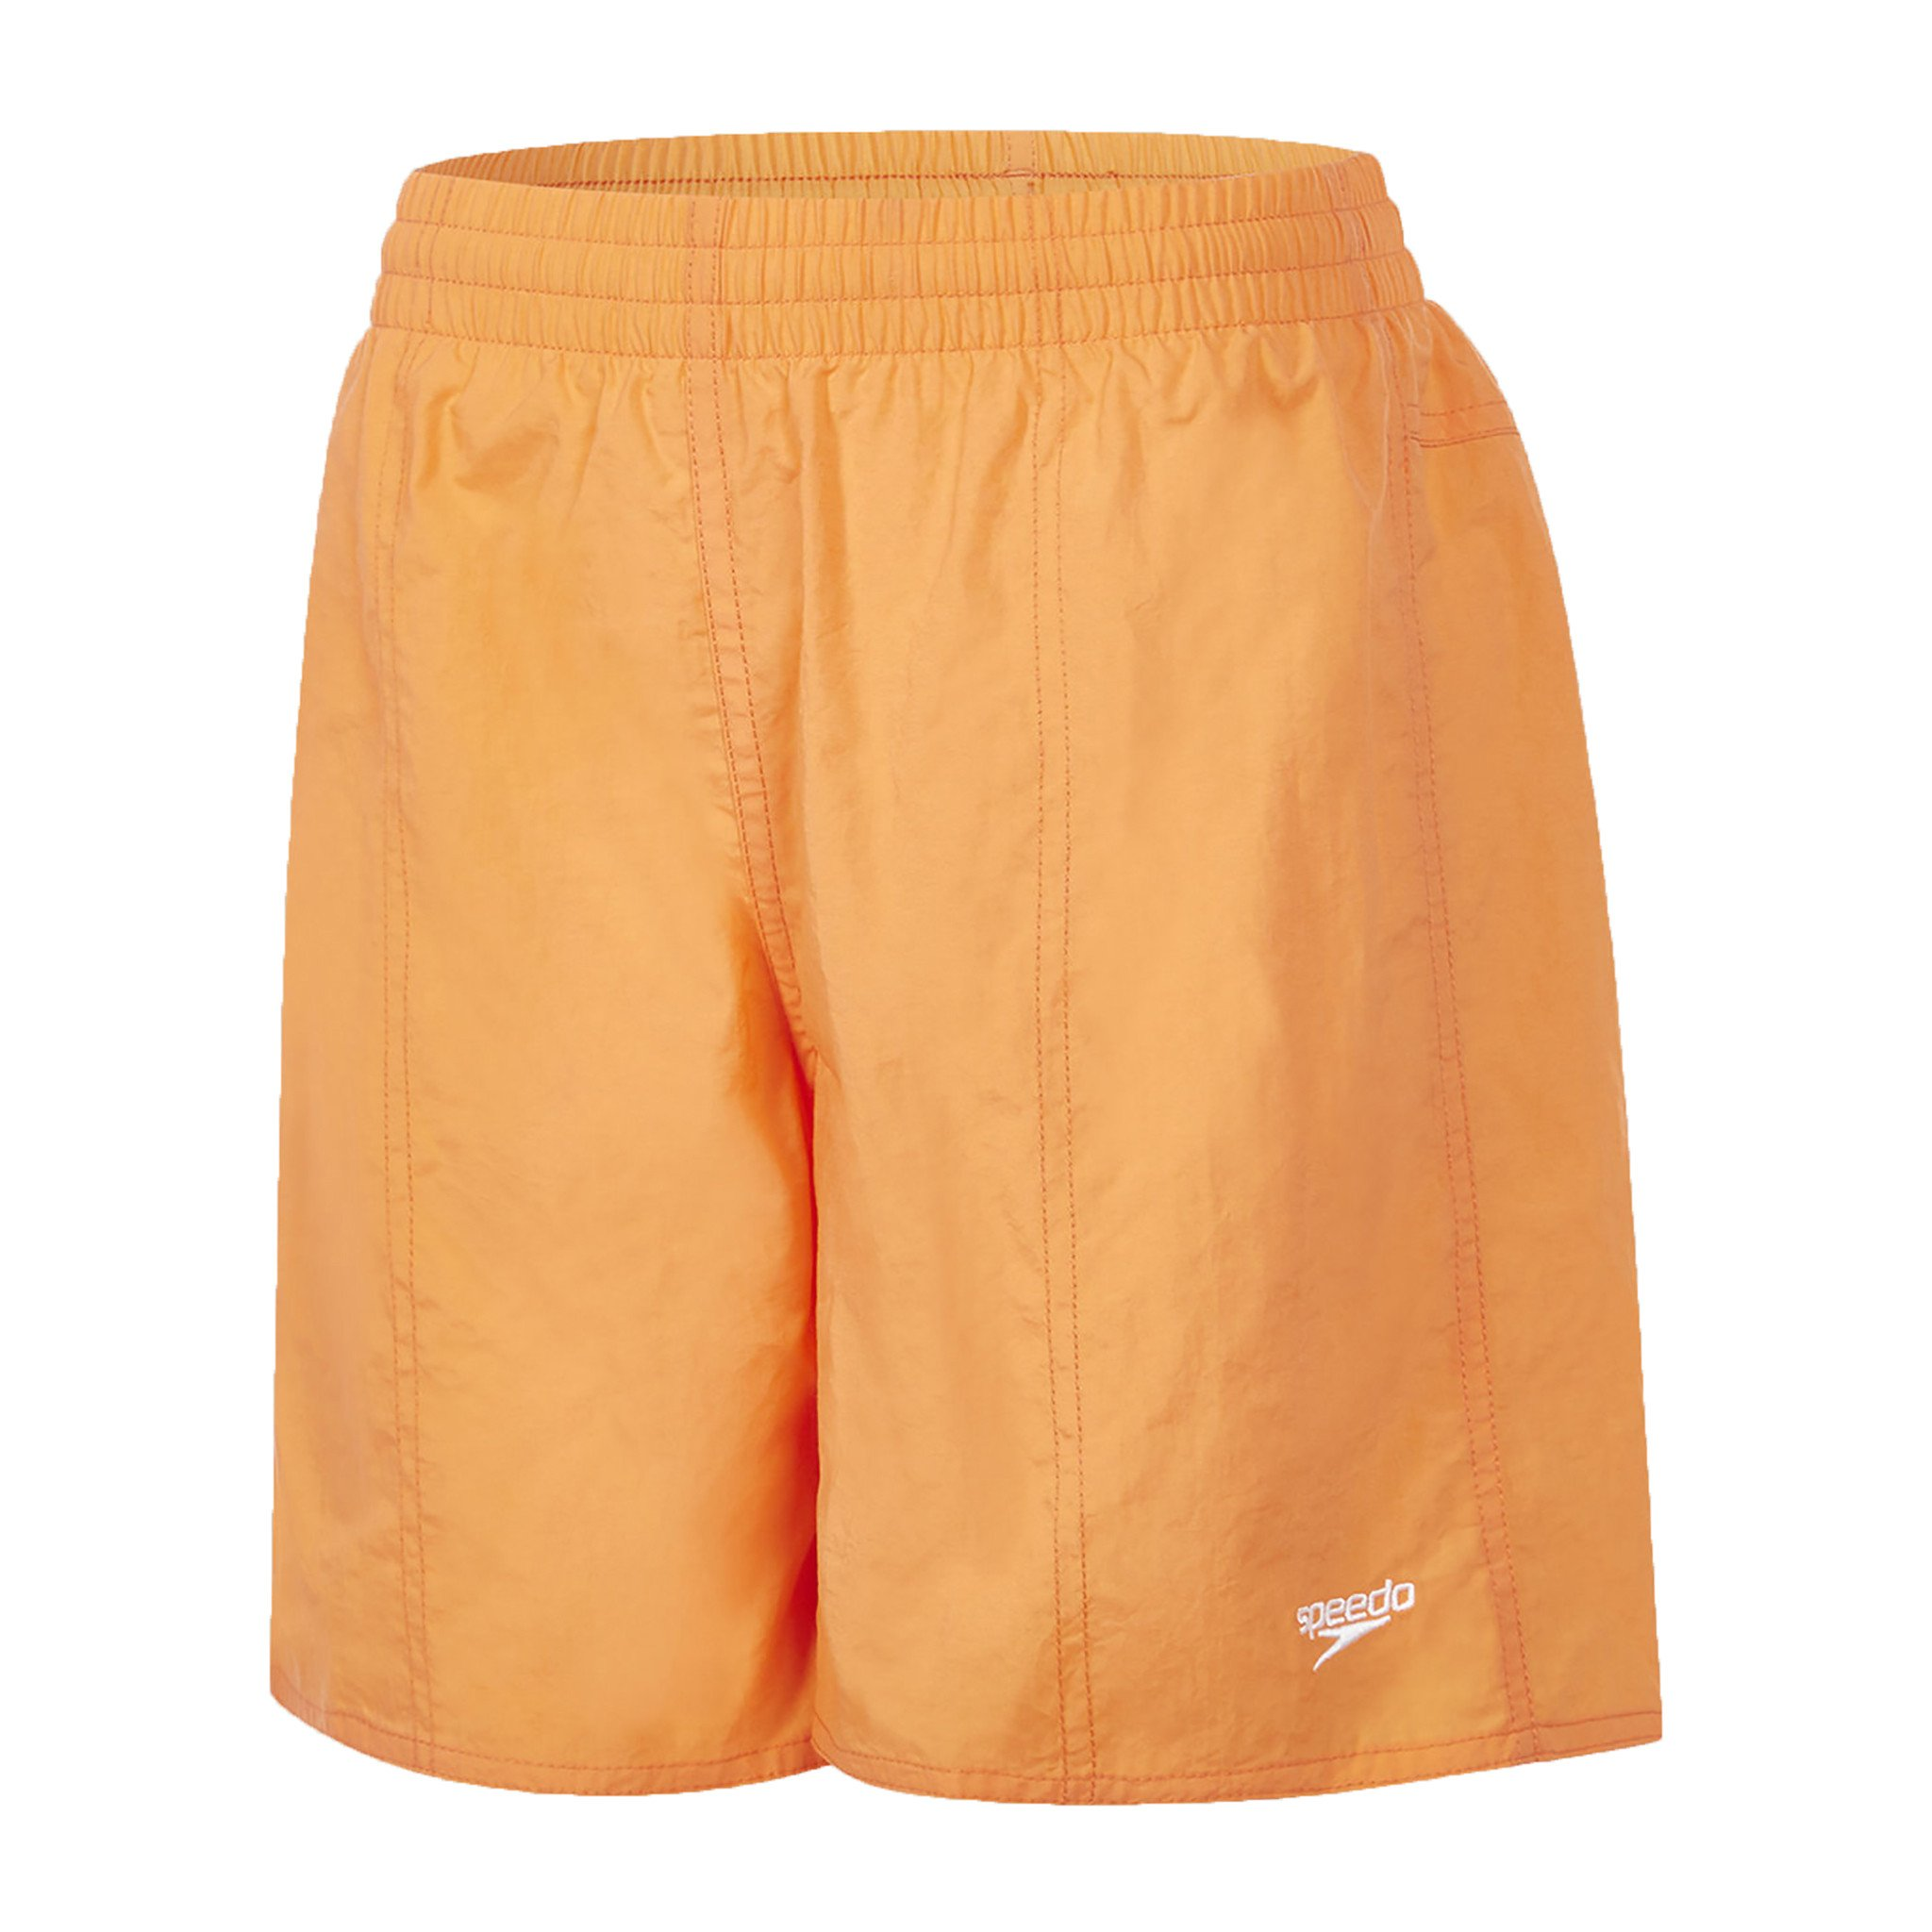 Speedo Orange Solid Leisure